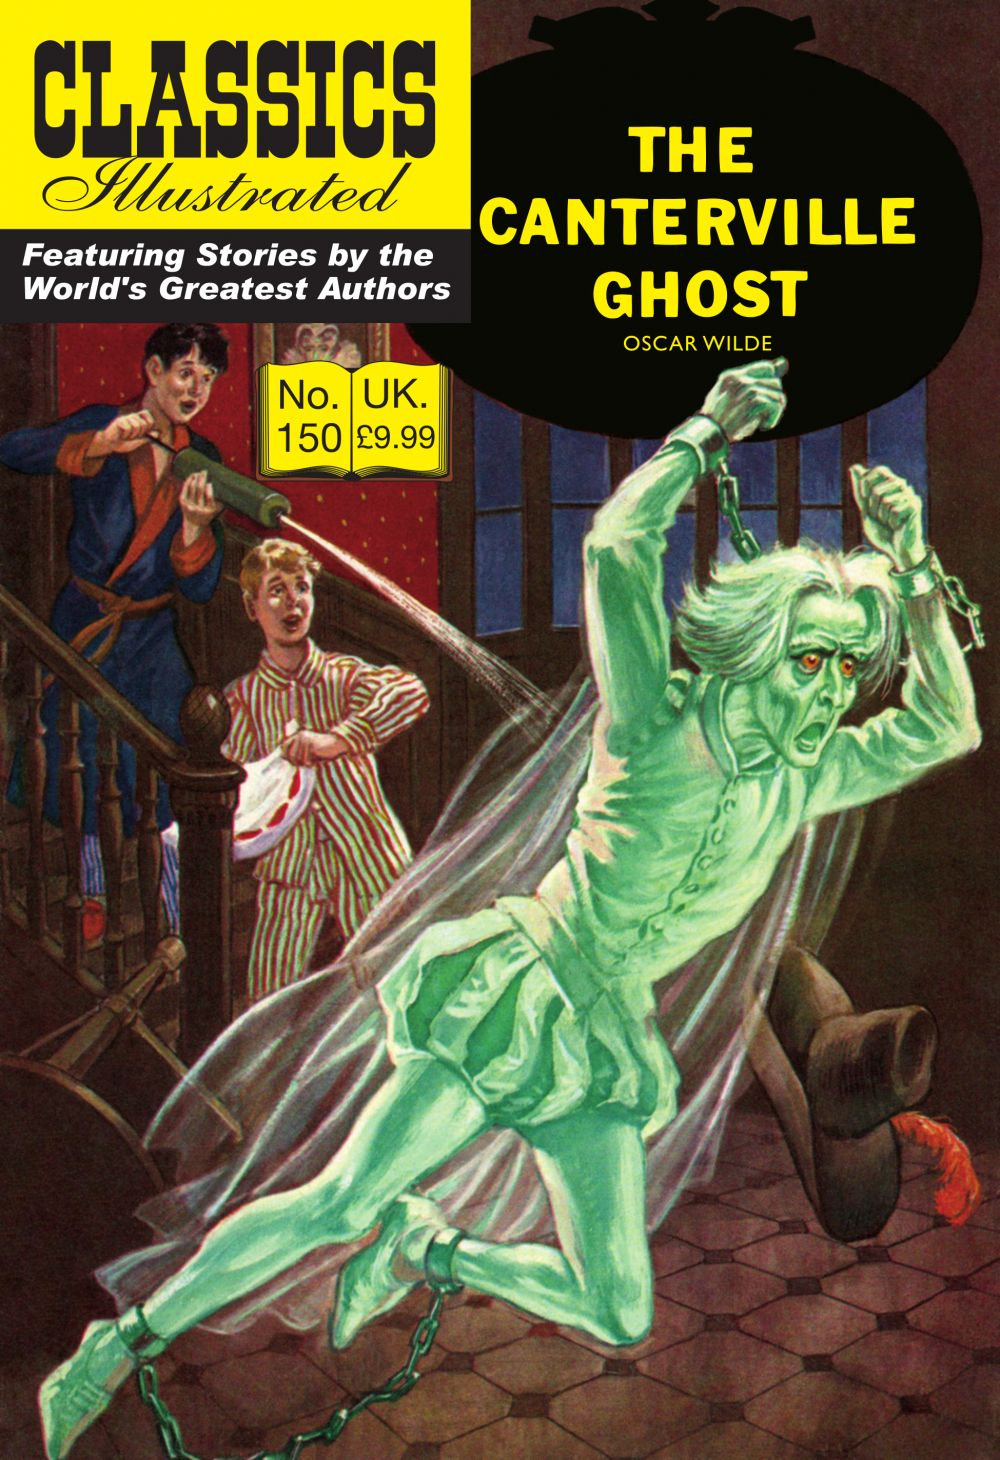 The Canterville Ghost JESUK150